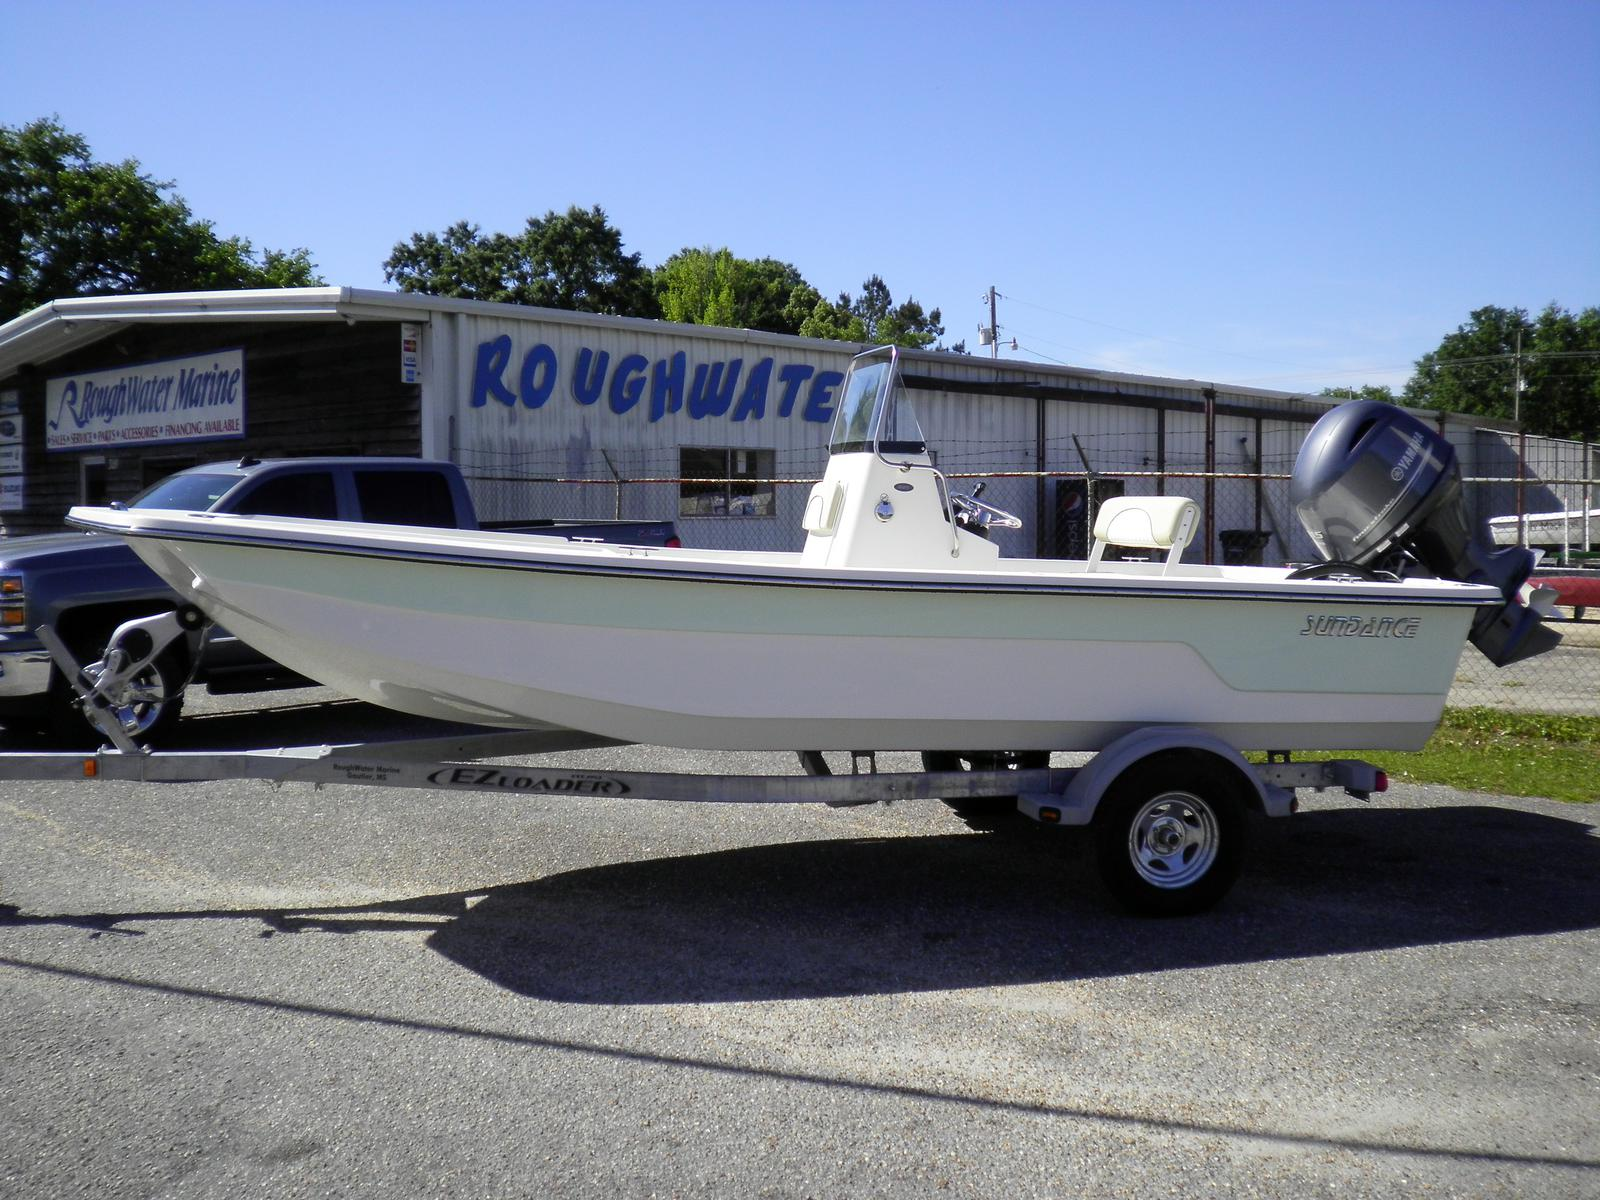 Inventory RoughWater Marine Gautier, MS (228) 497-2214